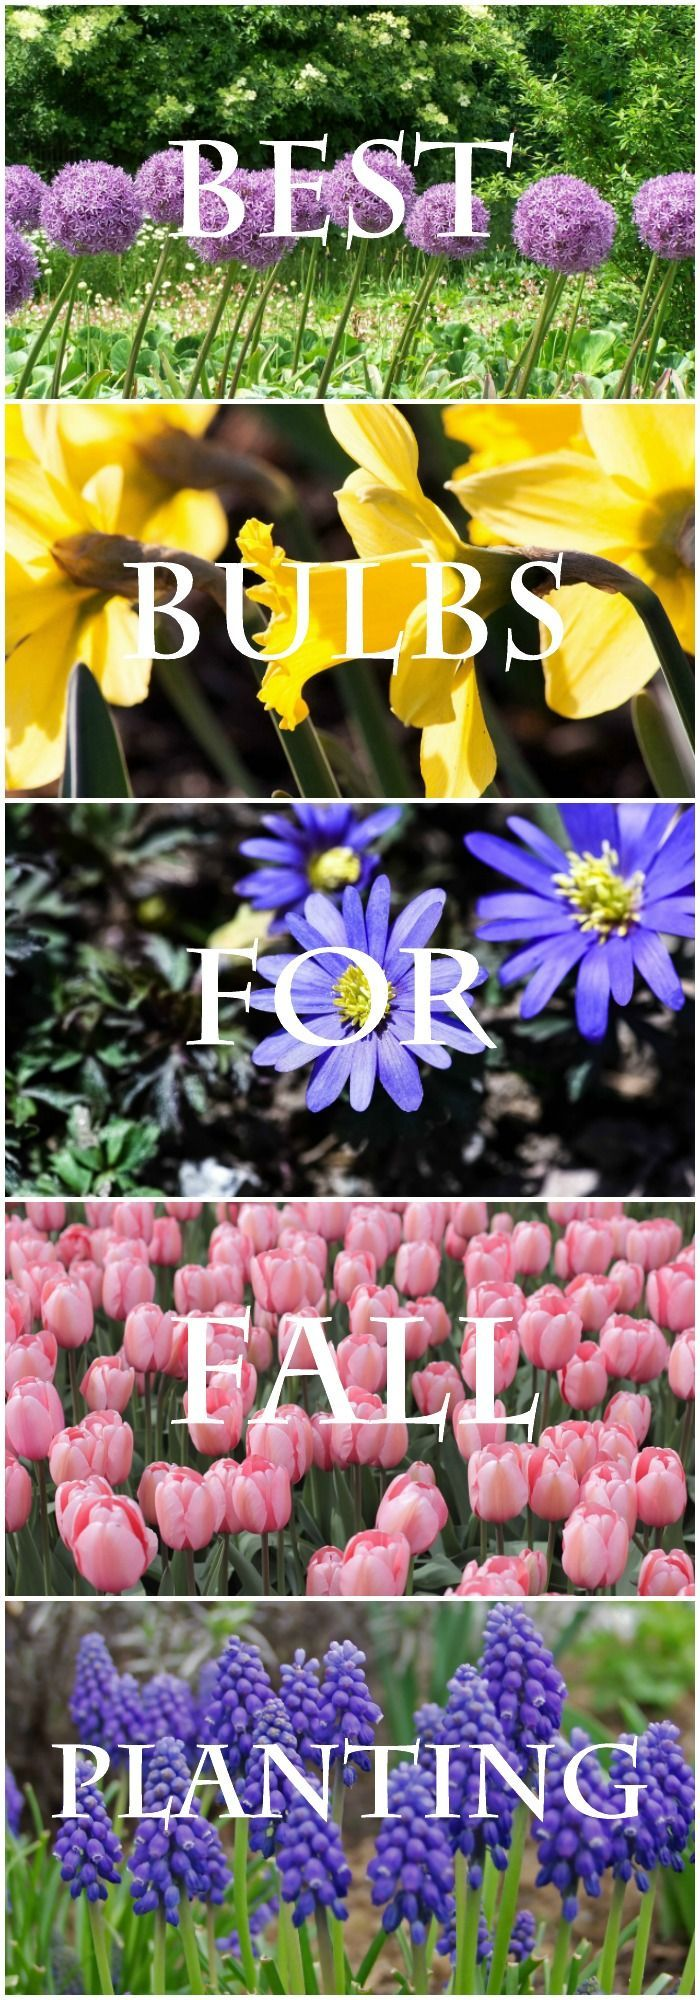 Best Bulbs to Plant in the Fall | If you want spring blooms, fall bulb planting is a must. Here is a list of bulbs plus tips and advice for the DIY gardener. Includes when to plant according to growing zones. #Sponsored